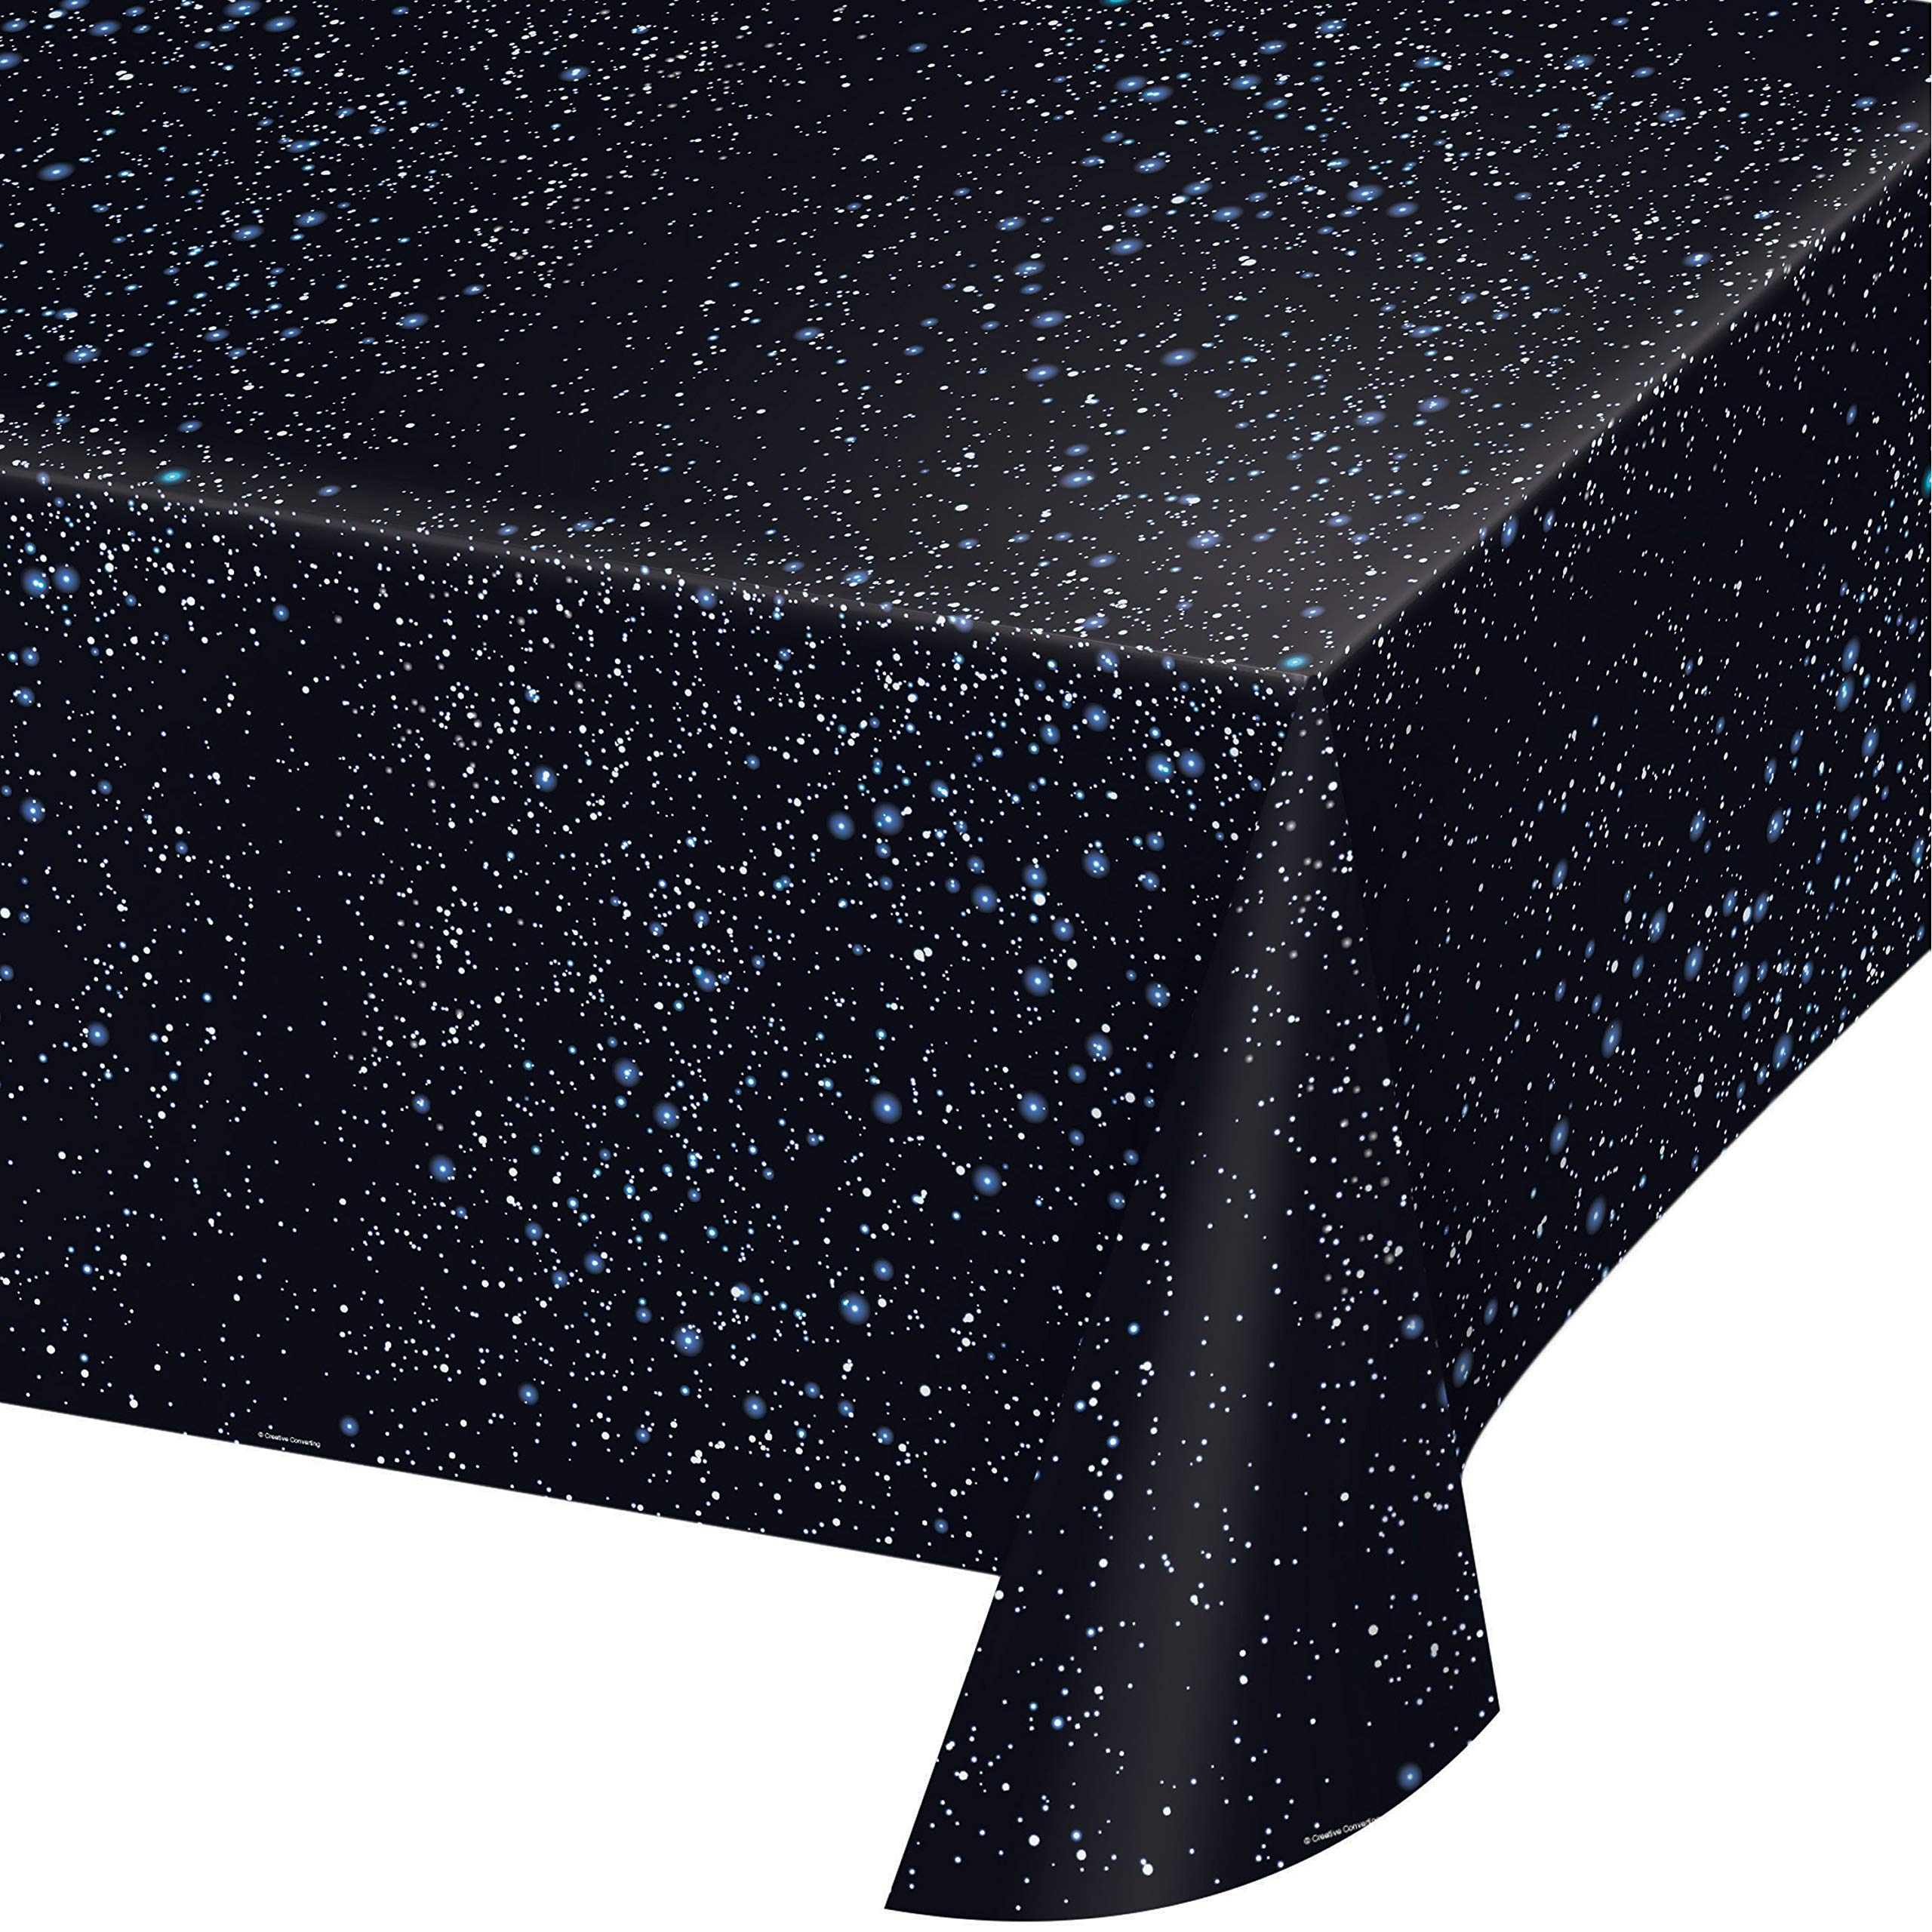 Space Blast Plastic Tablecloths, 3 ct by Creative Converting